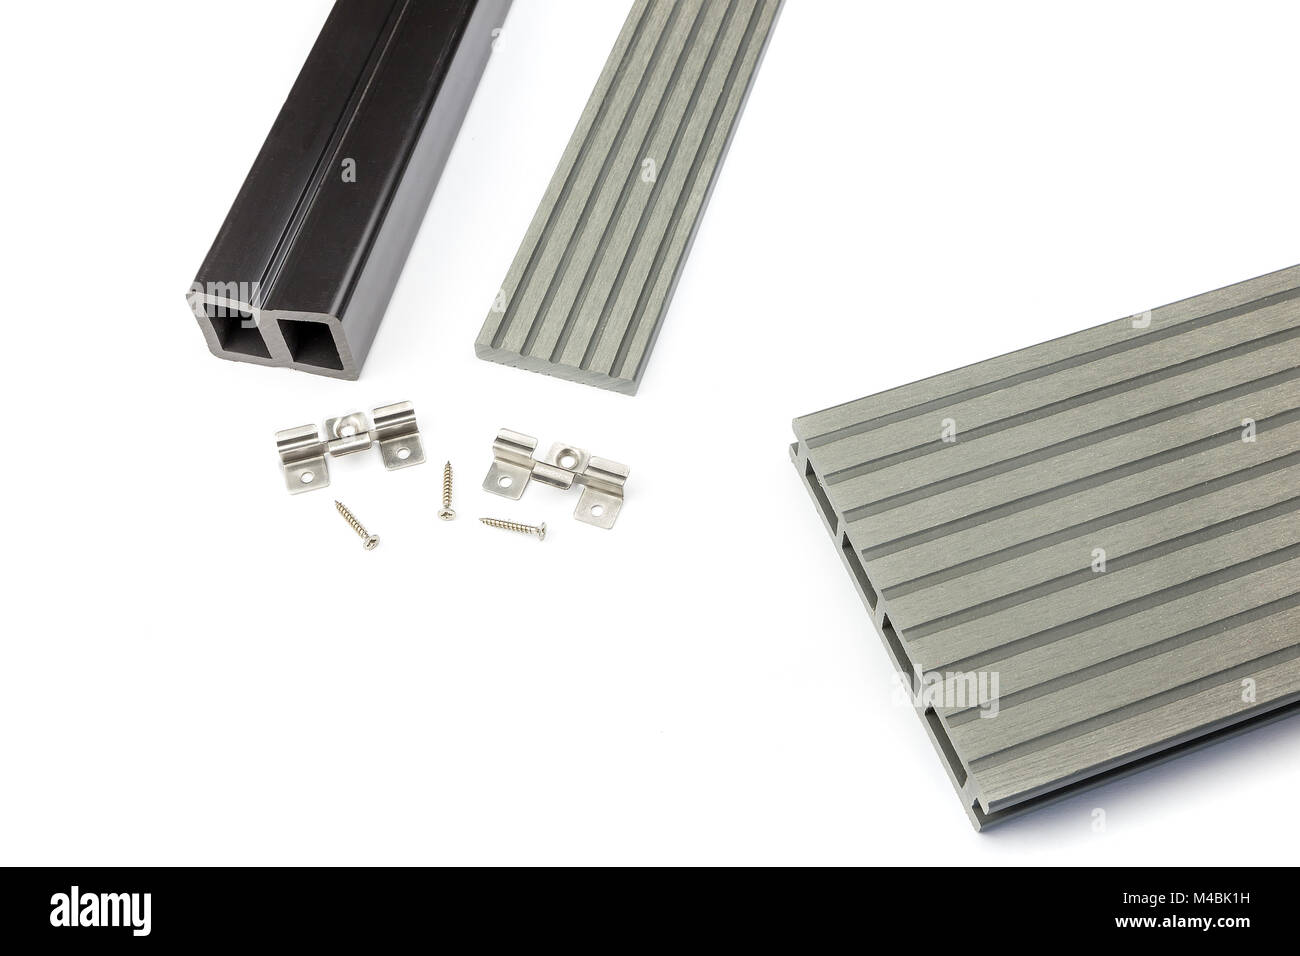 Antiskid stock photos antiskid stock images alamy for 4 8 meter decking boards